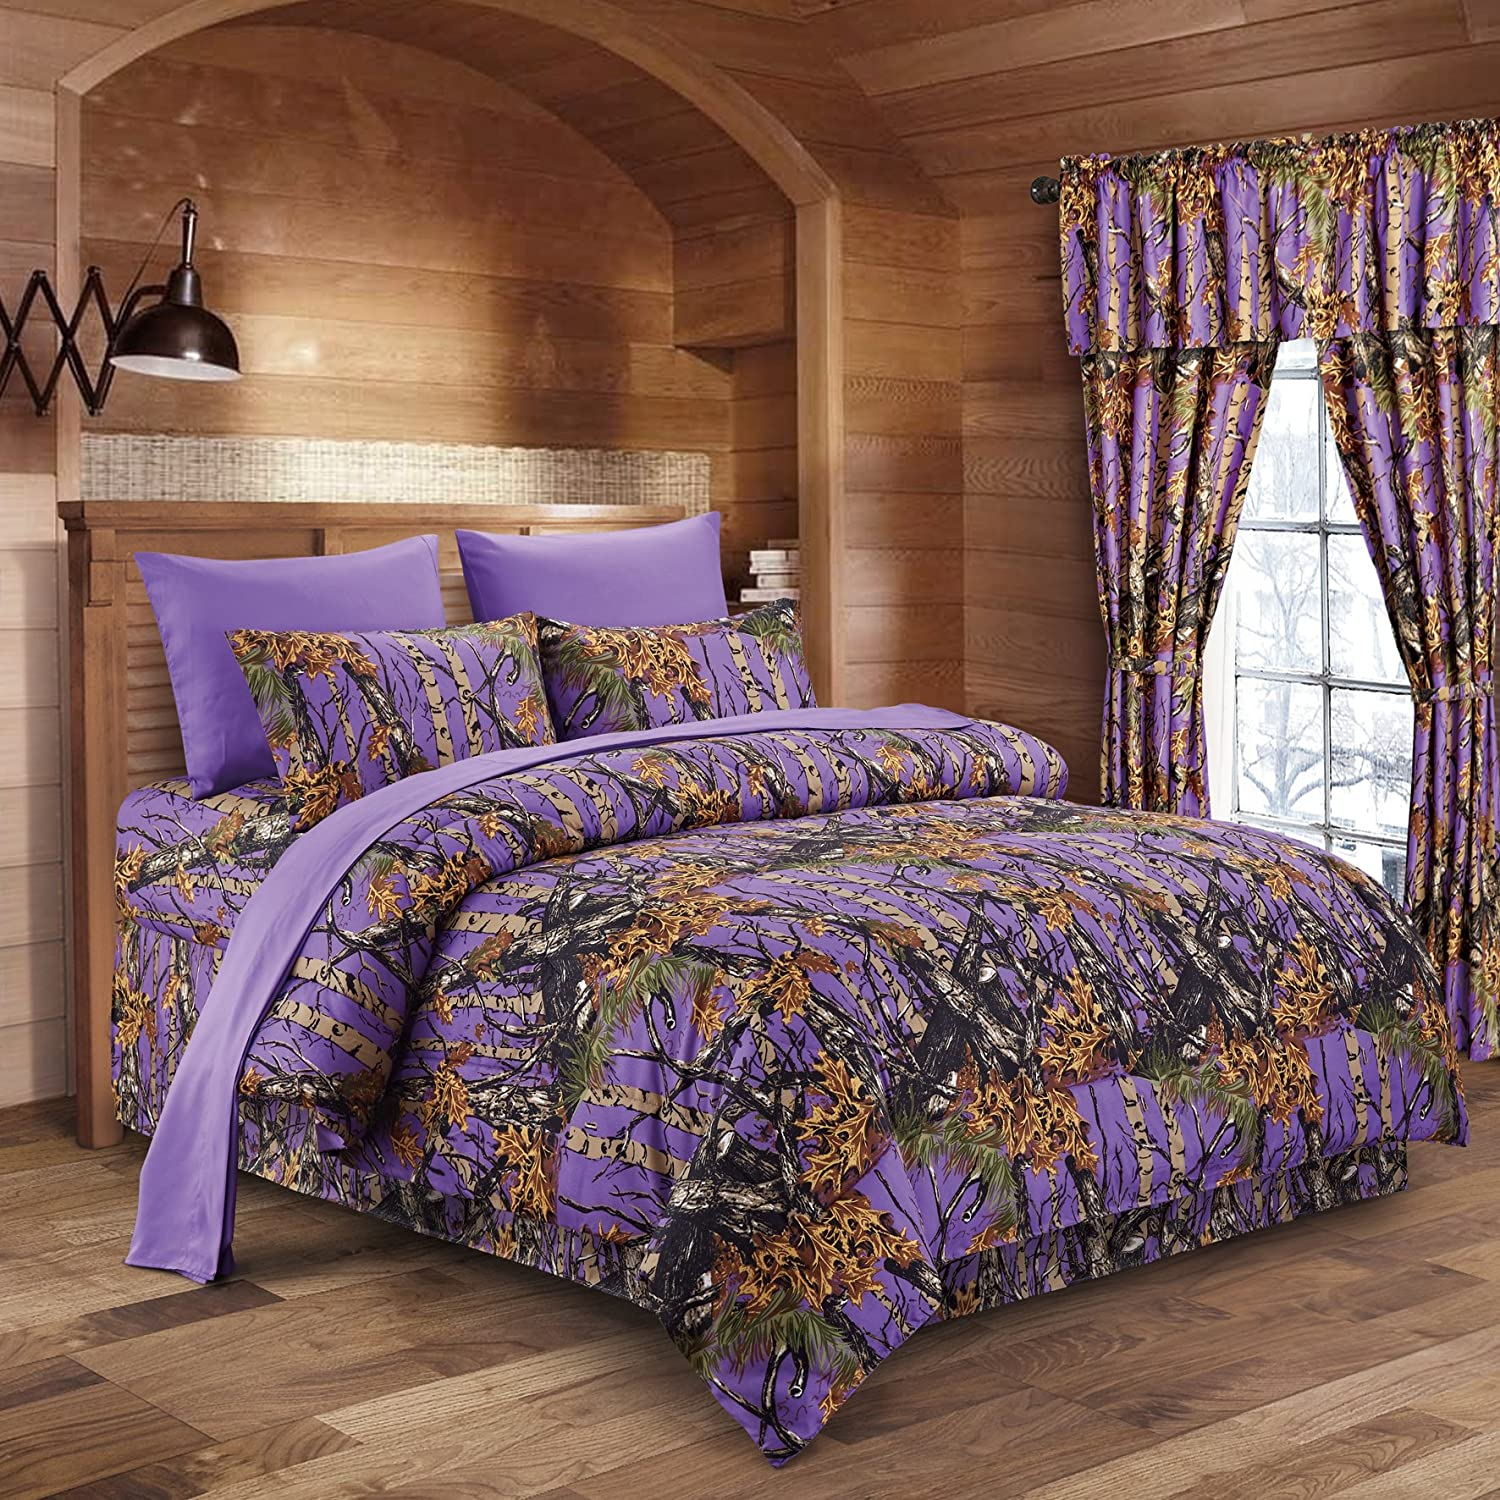 Regal Comfort The Woods Purple Camouflage Queen 8pc Premium Luxury Comforter